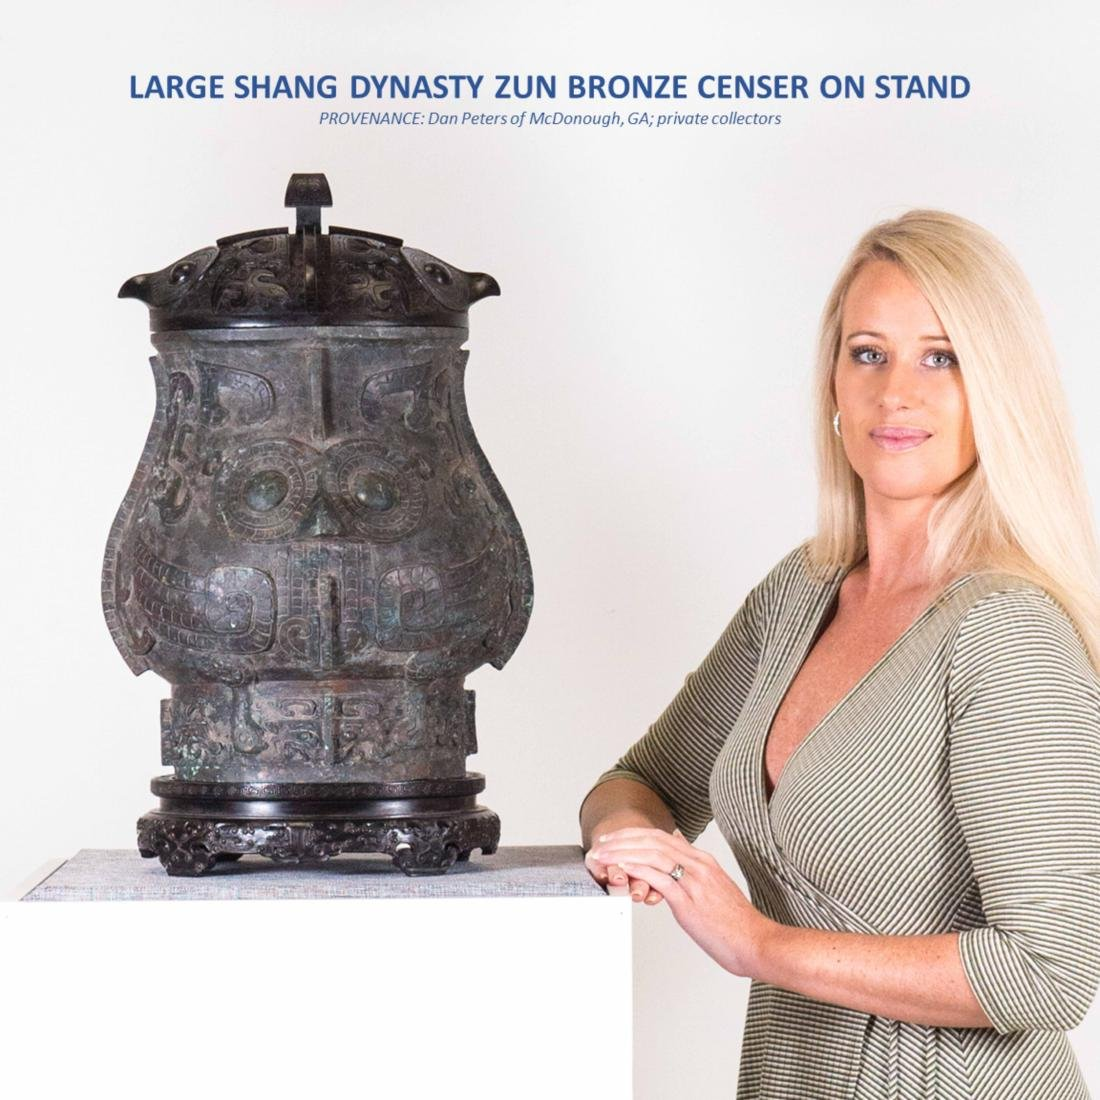 LARGE SHANG DYNASTY ZUN BRONZE CENSER ON STAND